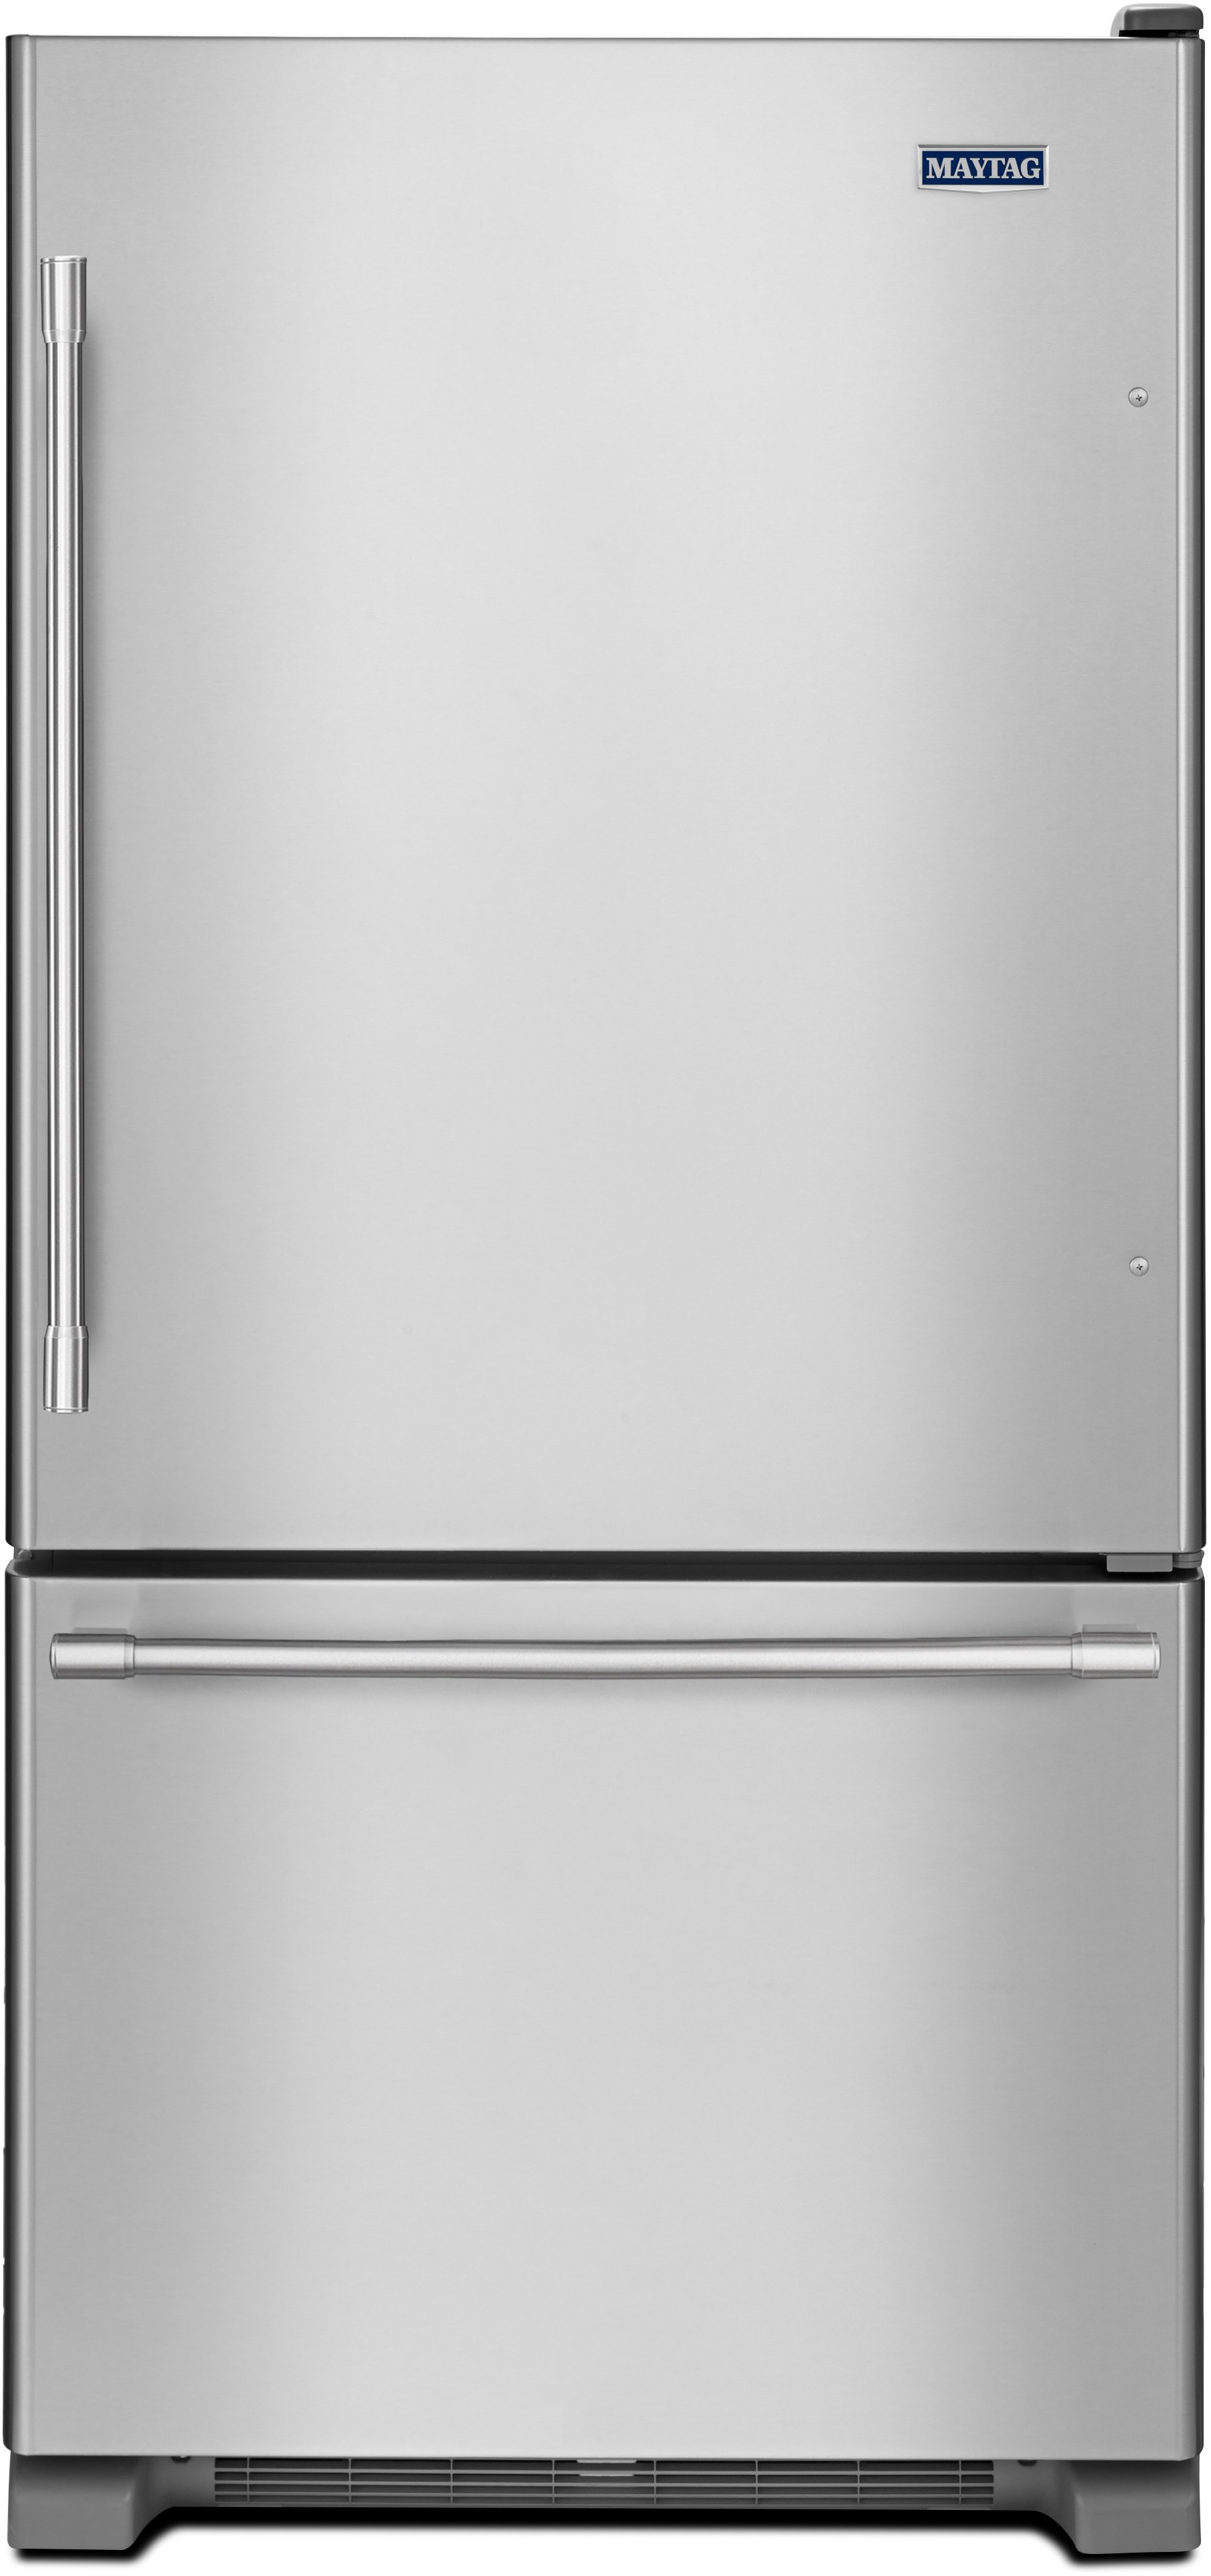 Kitchenaid Krfc300ess Kitchenaid Refrigerator 30 Inch Wide Mycoffeepot Org